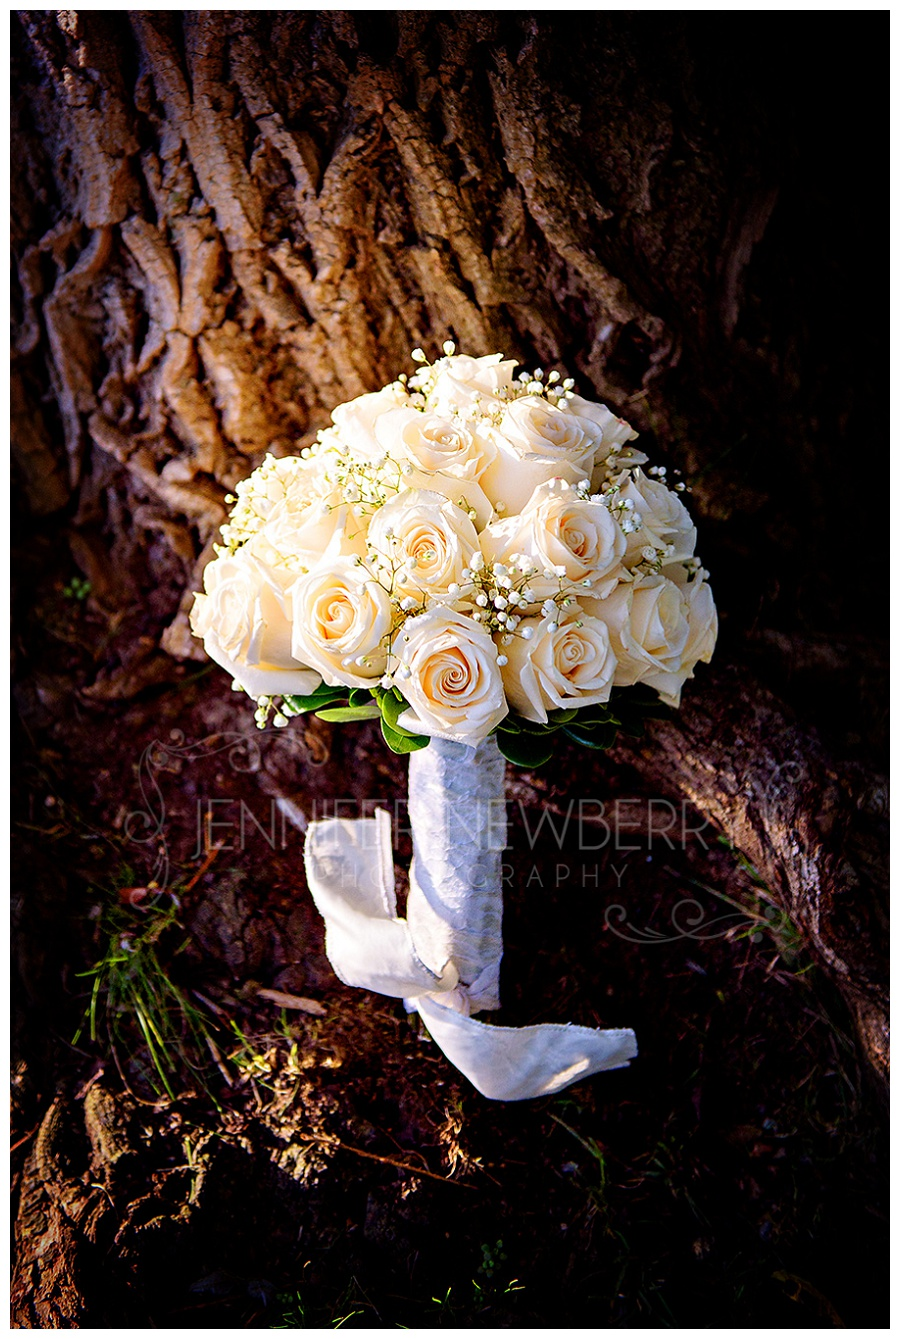 Milton wedding bouquet photos at Mill Pond by www.jnphotography.ca @filemanager